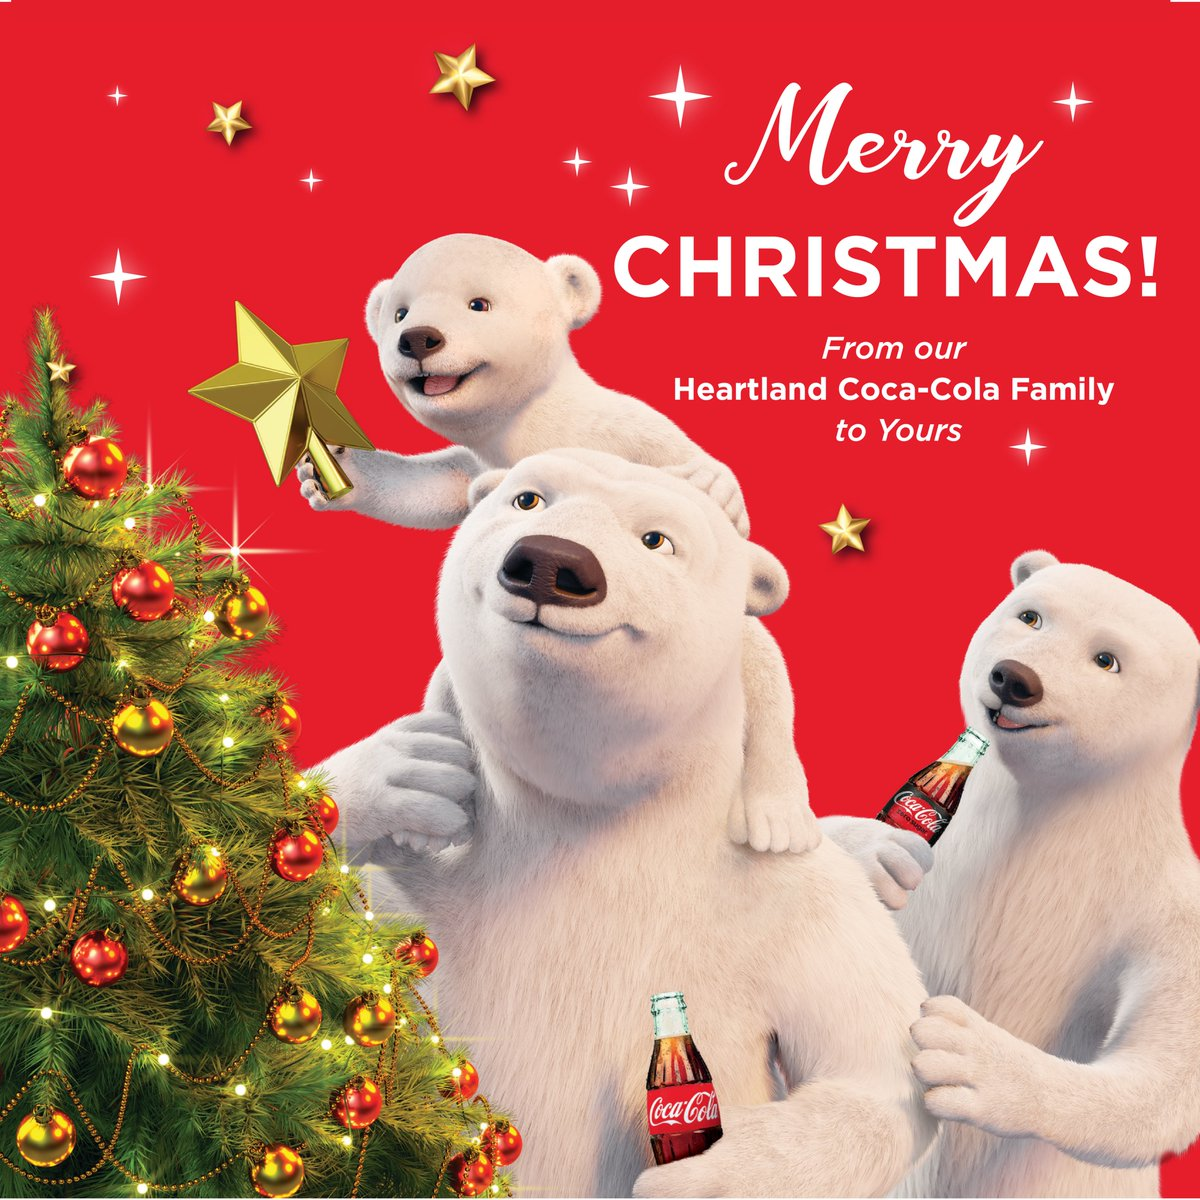 Best wishes and a very Merry Christmas from your friends at Heartland Coca-Cola. We hope your day is filled with lots of laughter, love, and fellowship. #MerryChristmas